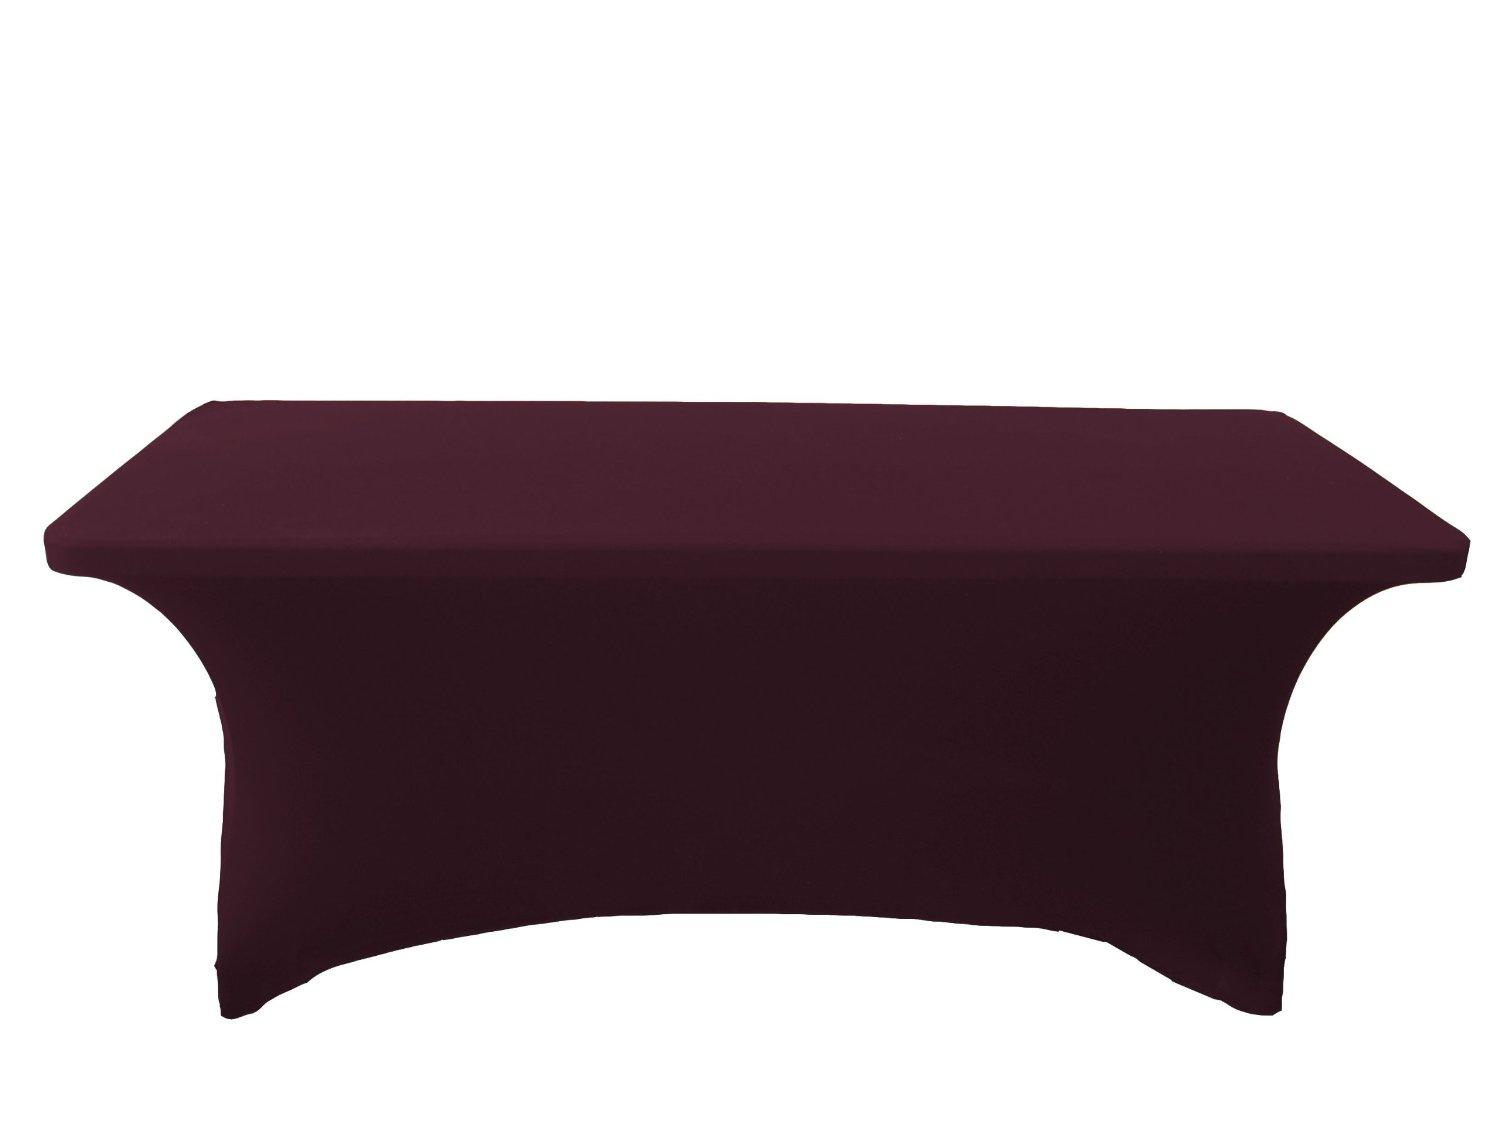 LA Linen Spandex Table Cloth for a 8-Feet Rectangular Table, 96 by 30 by 30-Inch, Eggplant